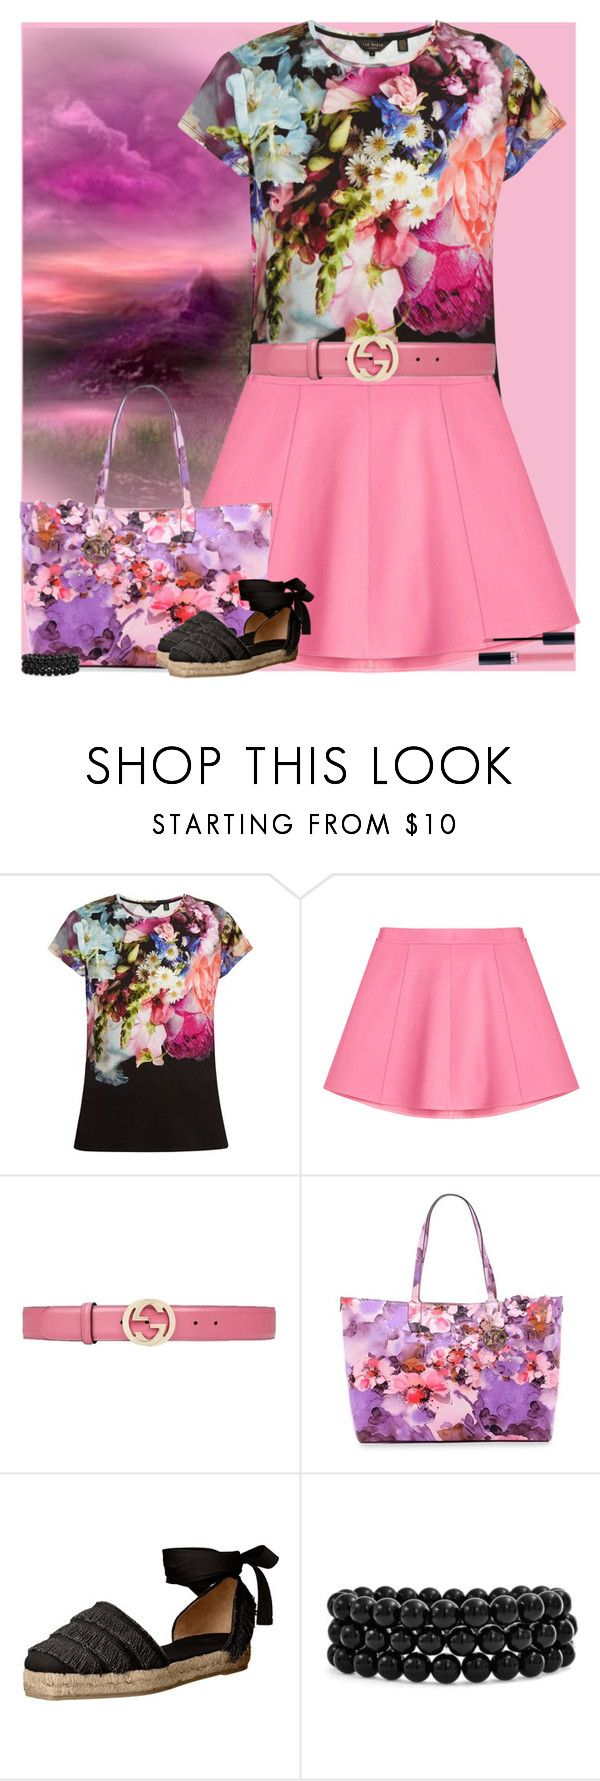 """""""Bez naslova #3027"""" by gita016 ❤ liked on Polyvore featuring Ted Baker, RED Valentino, Gucci, New Directions, Castañer, Bling Jewelry and Christian Dior"""